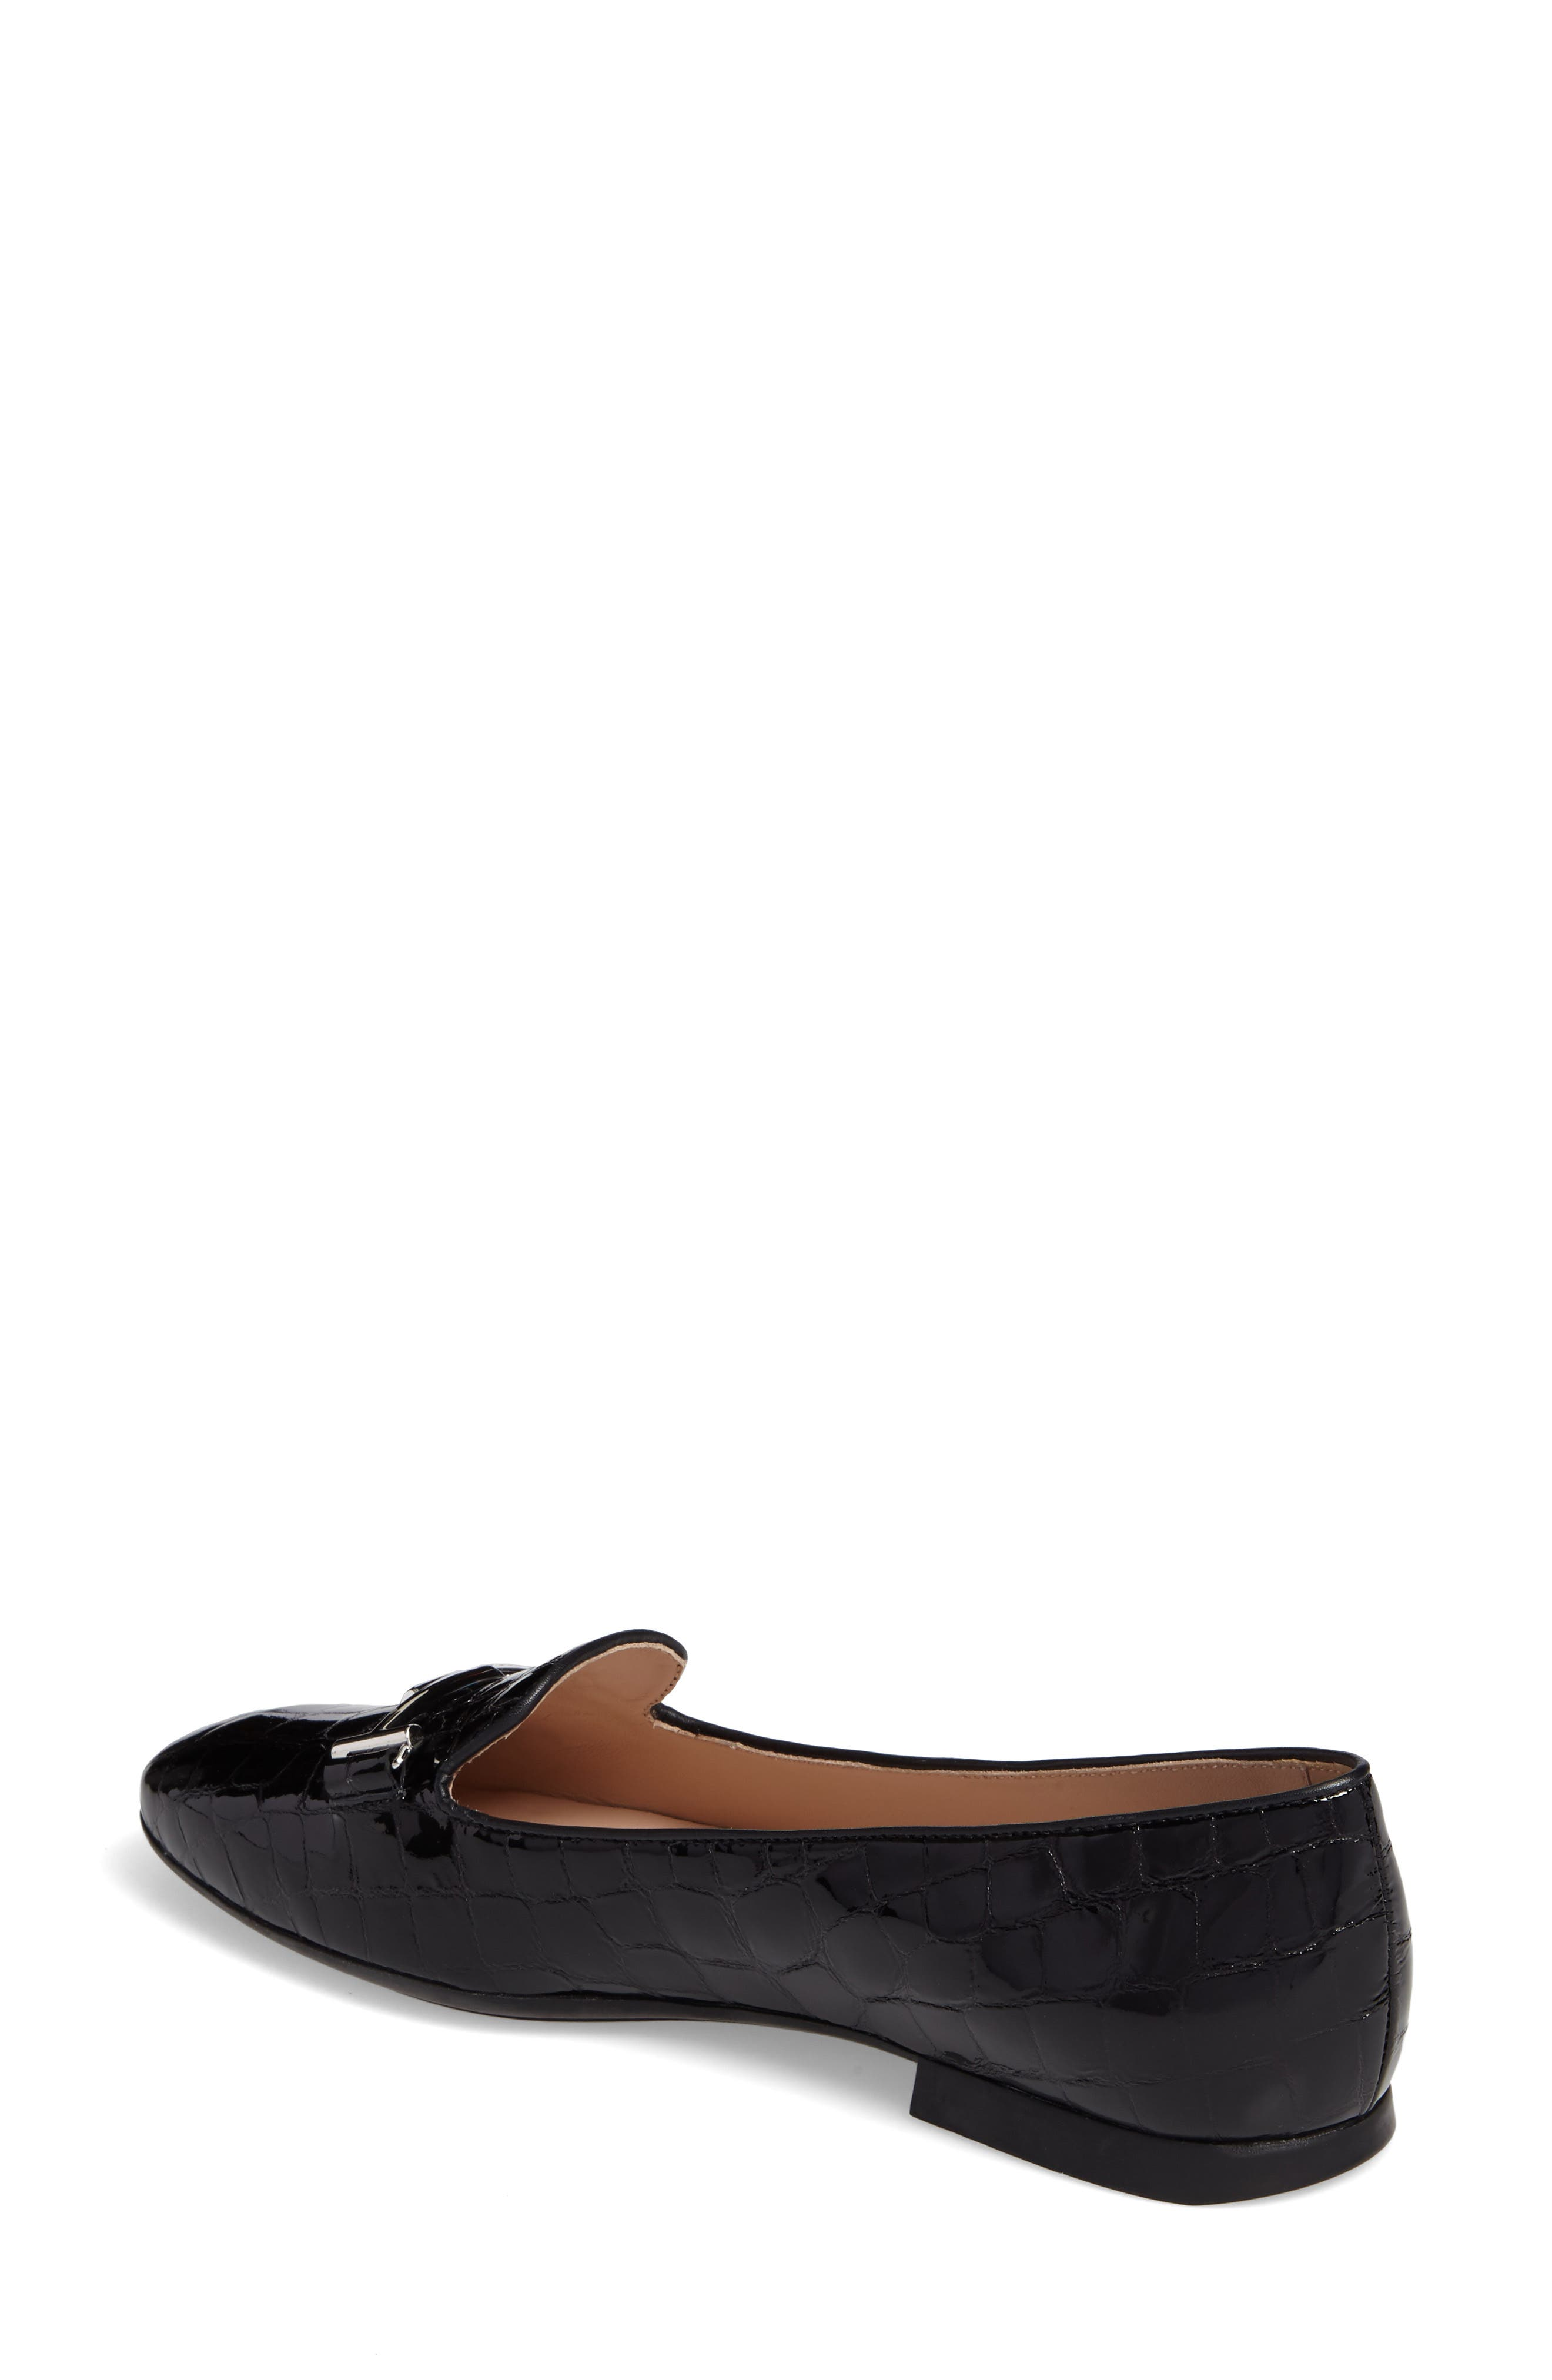 Tods Double T Loafer,                             Alternate thumbnail 2, color,                             BLACK